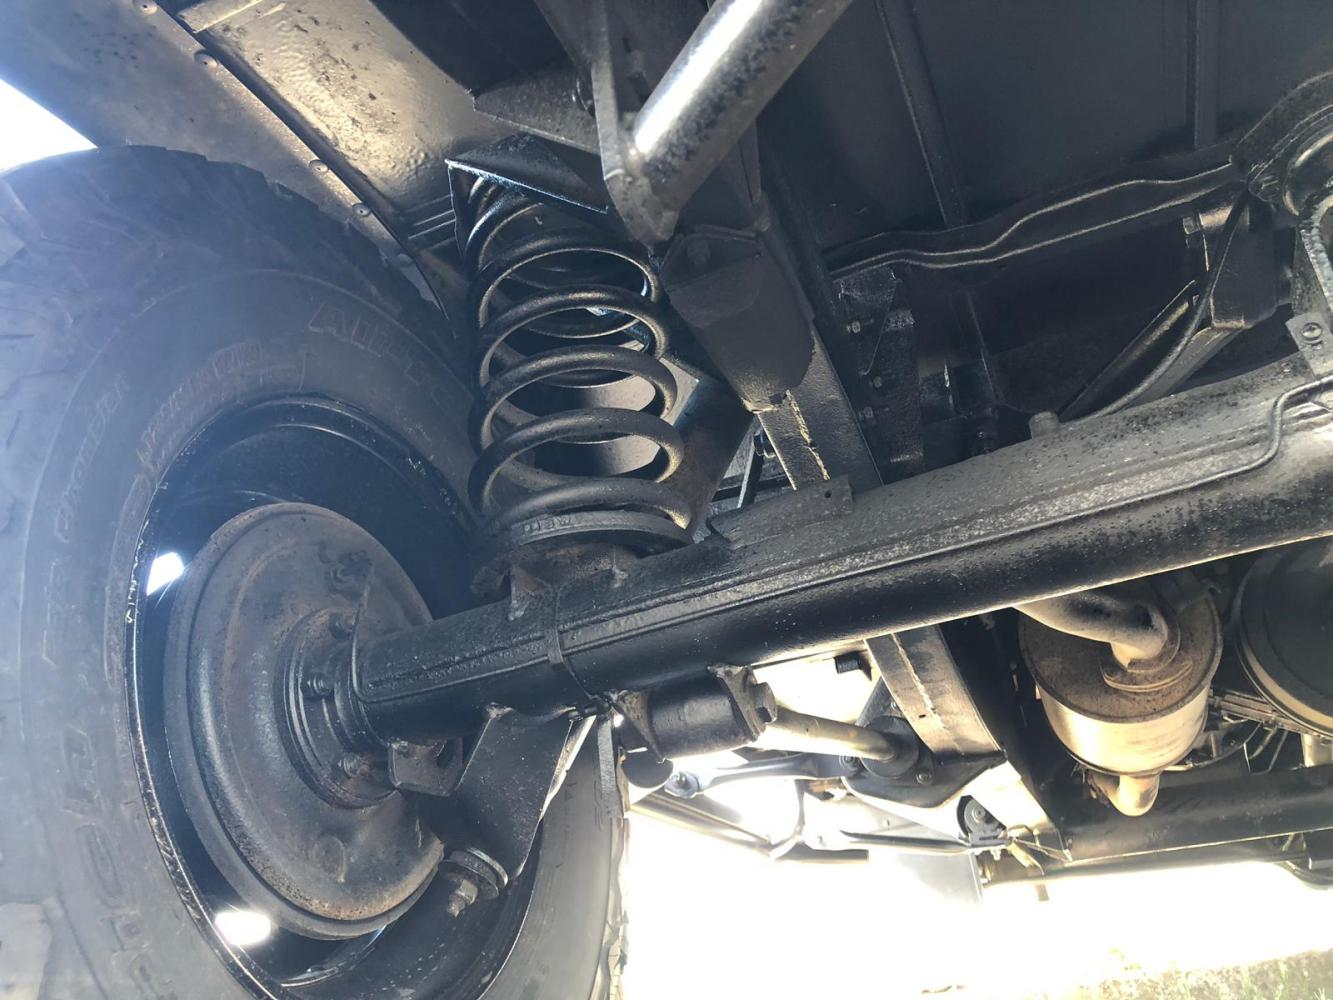 Click image for larger version  Name:Under rear left axle.jpg Views:29 Size:155.6 KB ID:419038